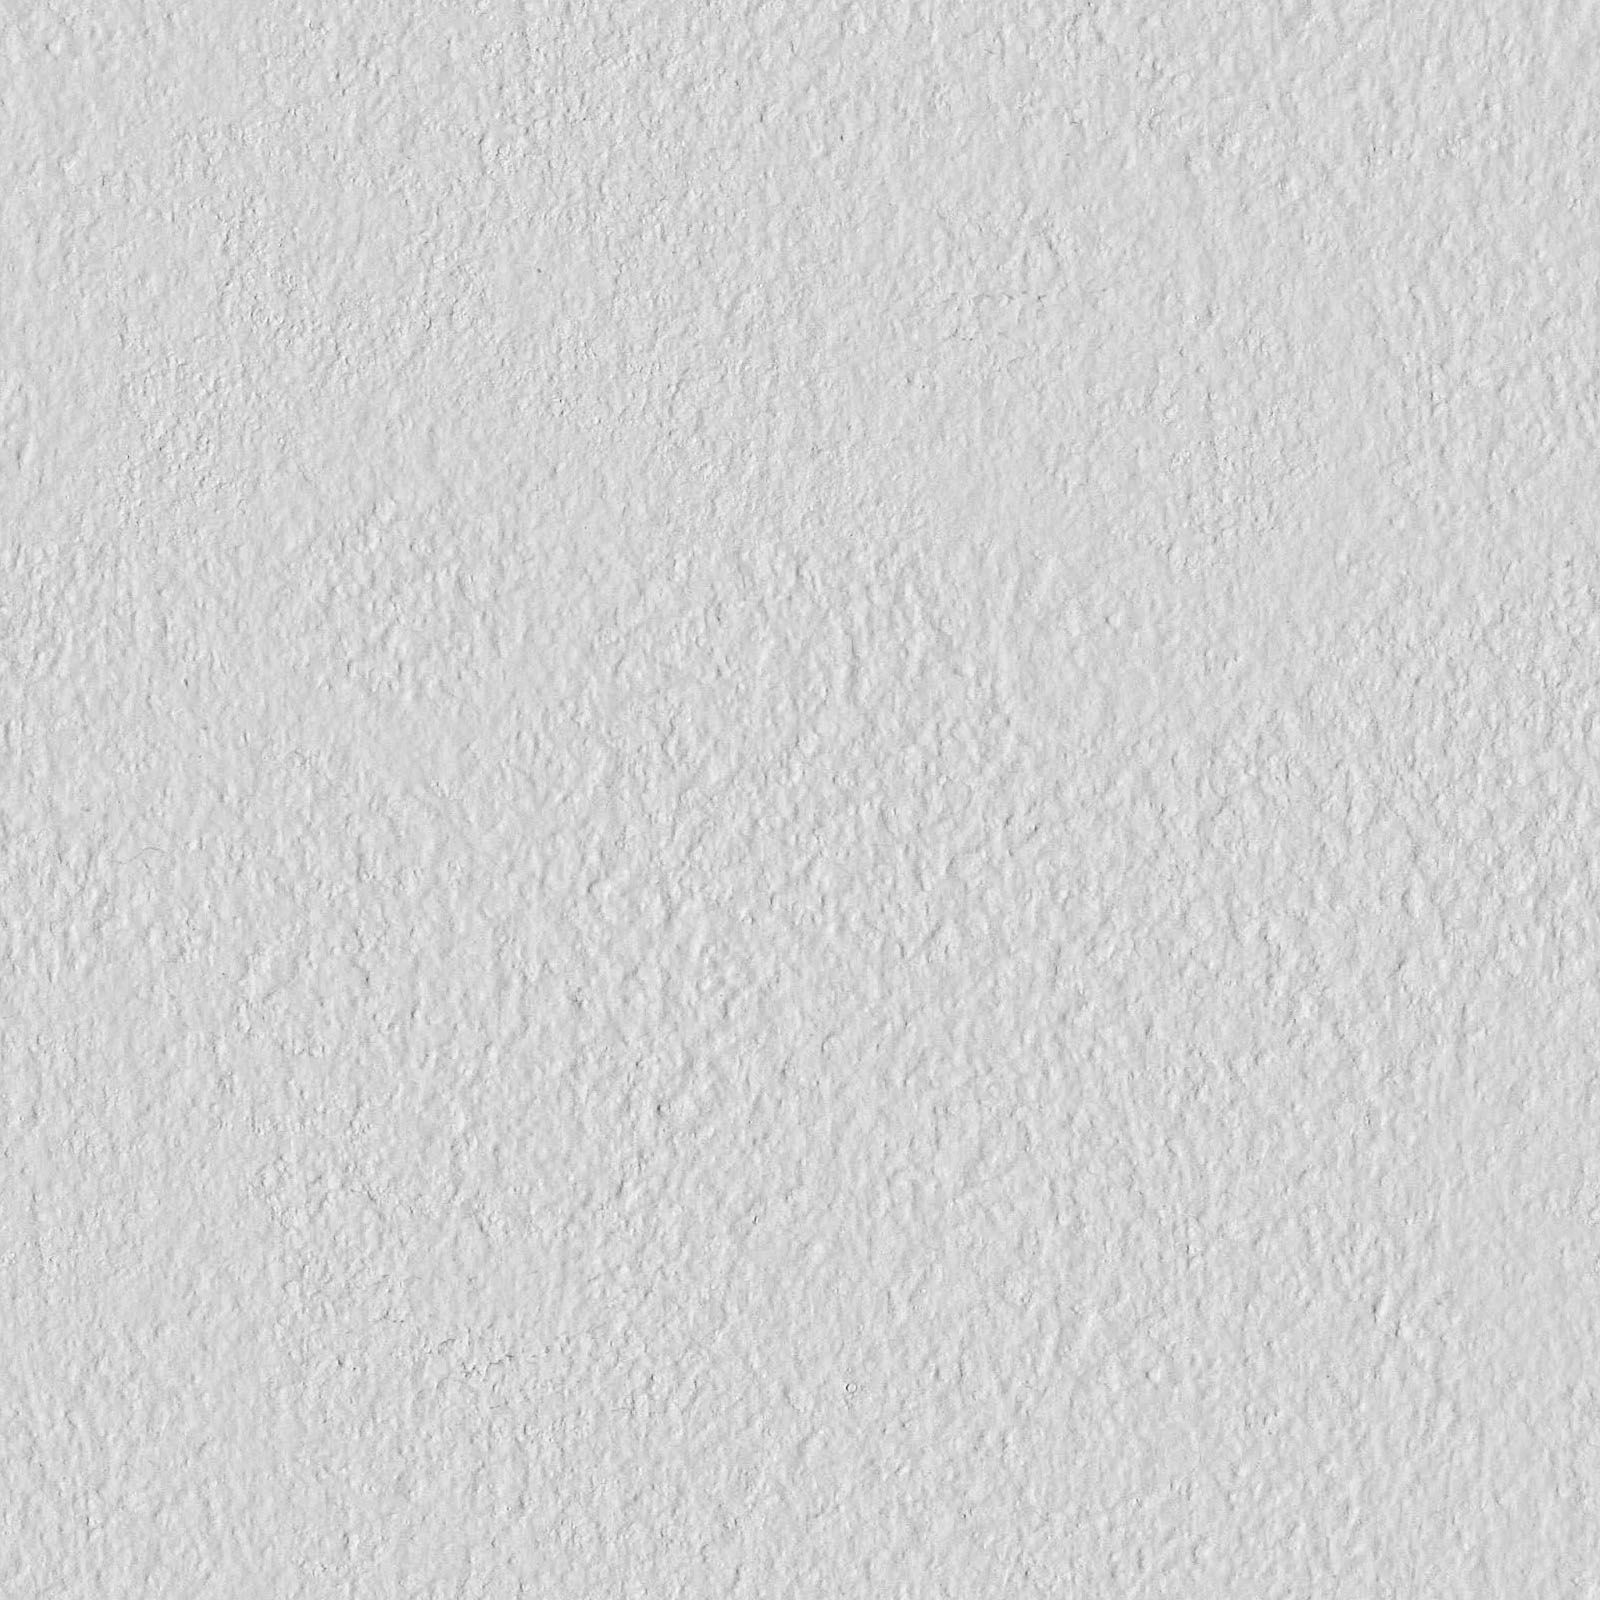 Wall paint texture seamless - Seamless White Wall Paint Stucco Plaster With Maps Diffuse Normal Specular